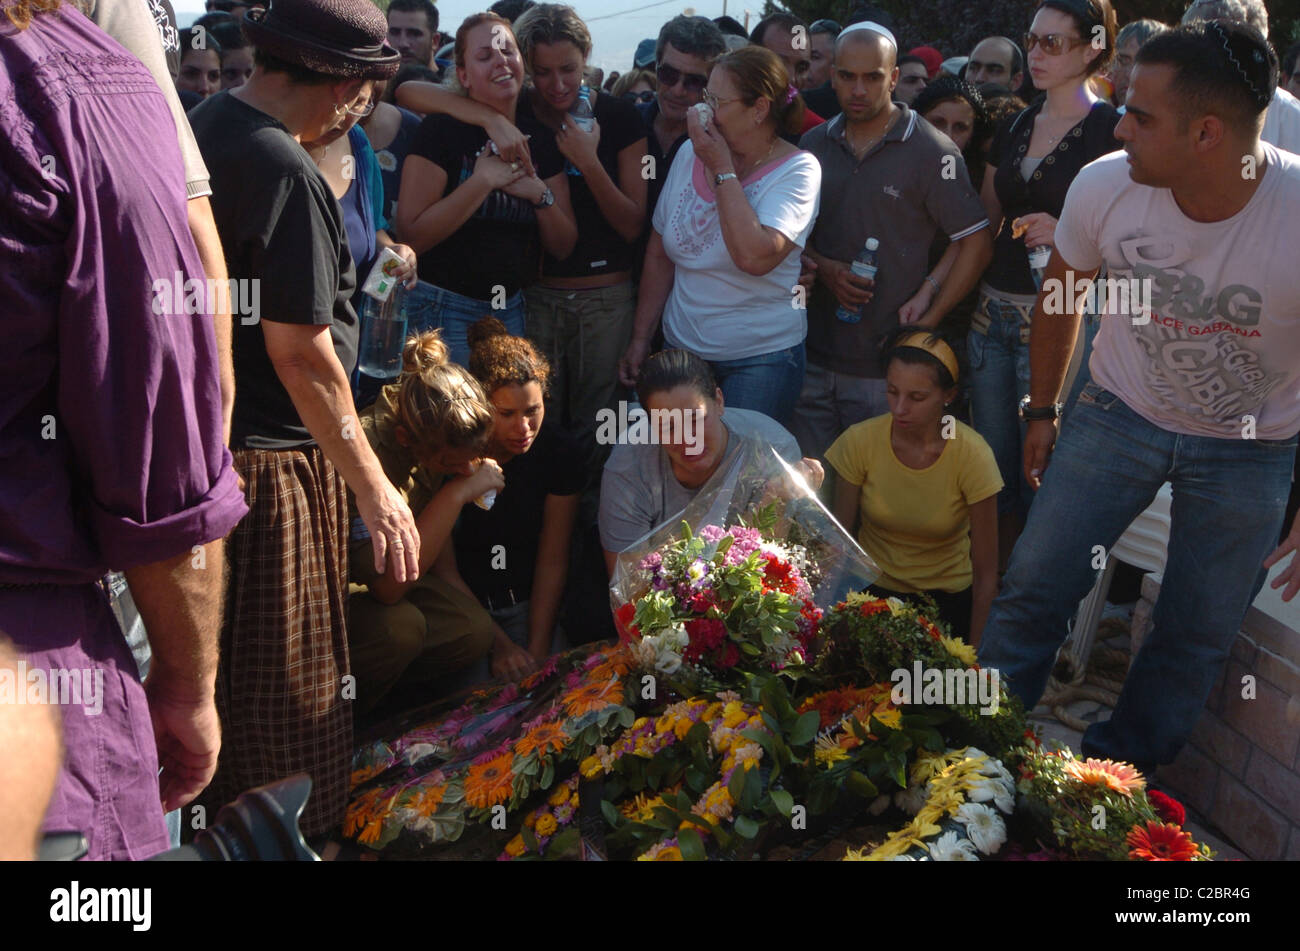 Thursday 17th August 2006 Kiryat Shmona North Israel The last Israel solider to be killed by the Hezballah in Lebanon - Stock Image